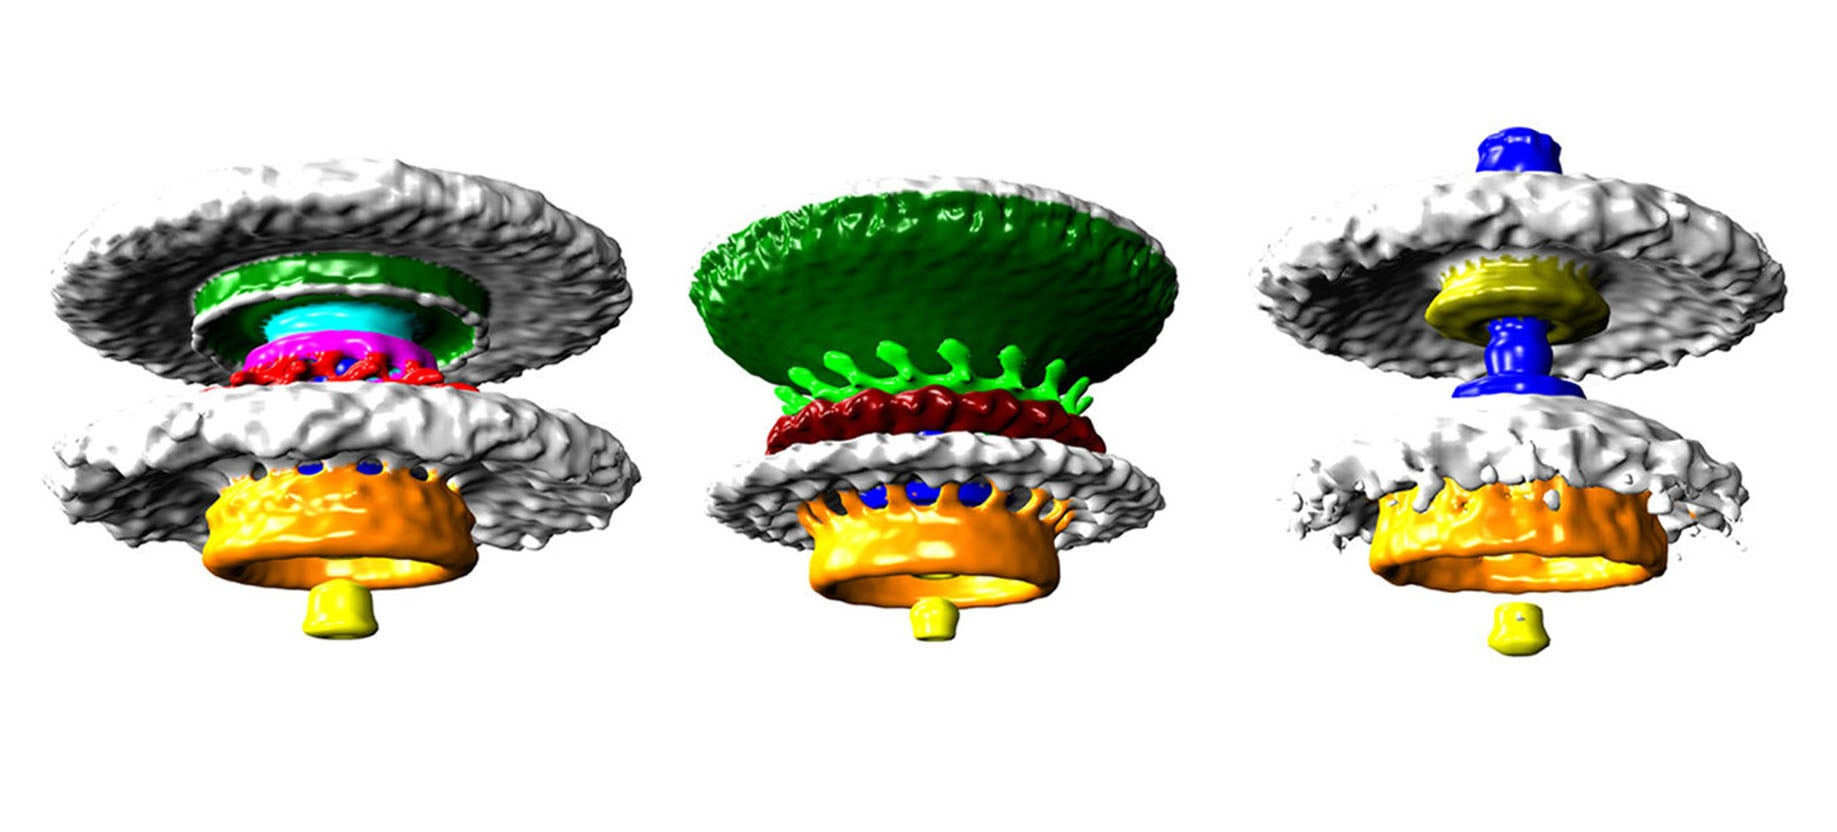 These Are the First-Ever High-Res Images of Naturally Occuring Biological Motors